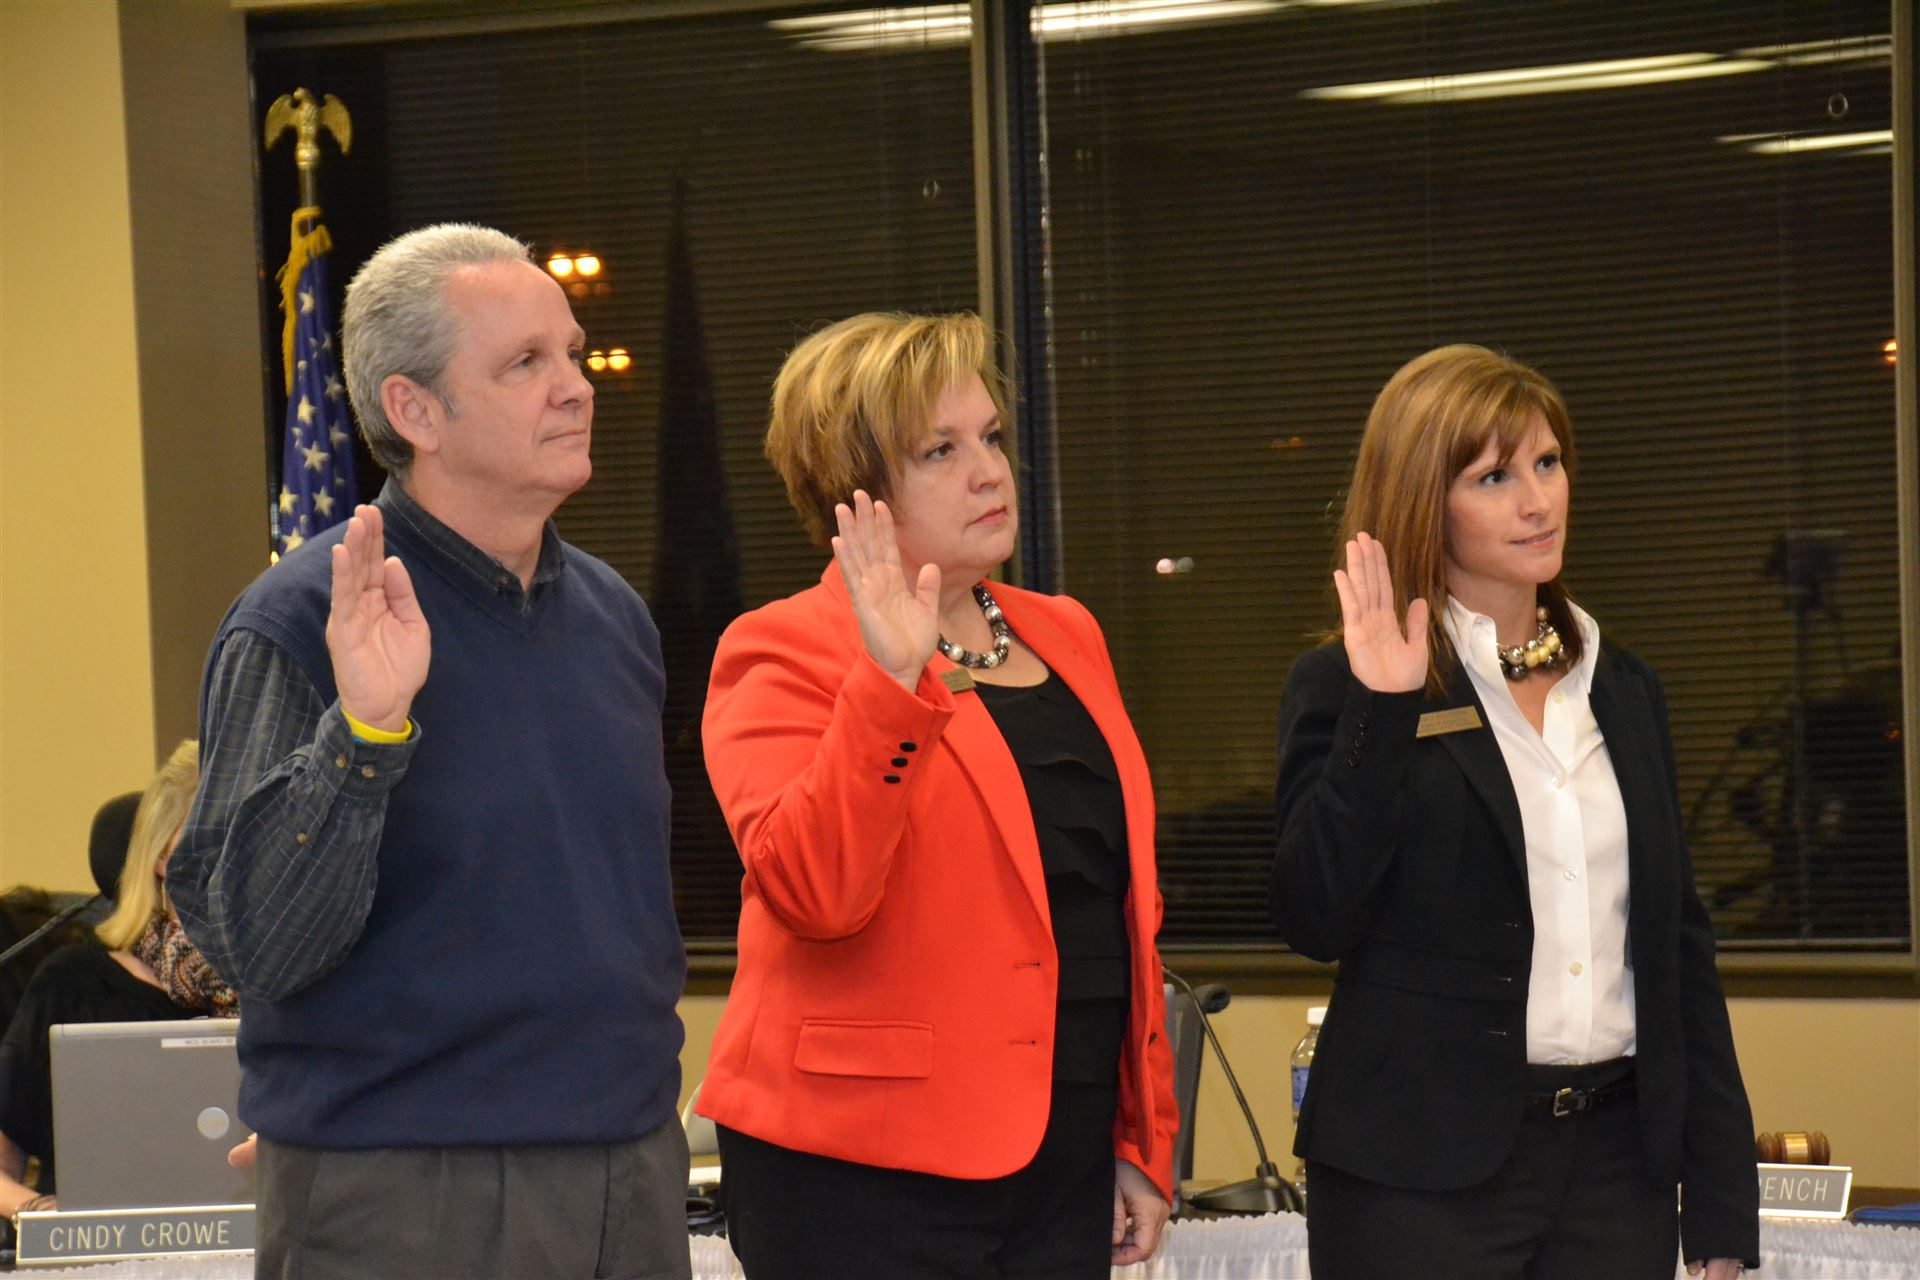 Board of Education Members being sworn into office